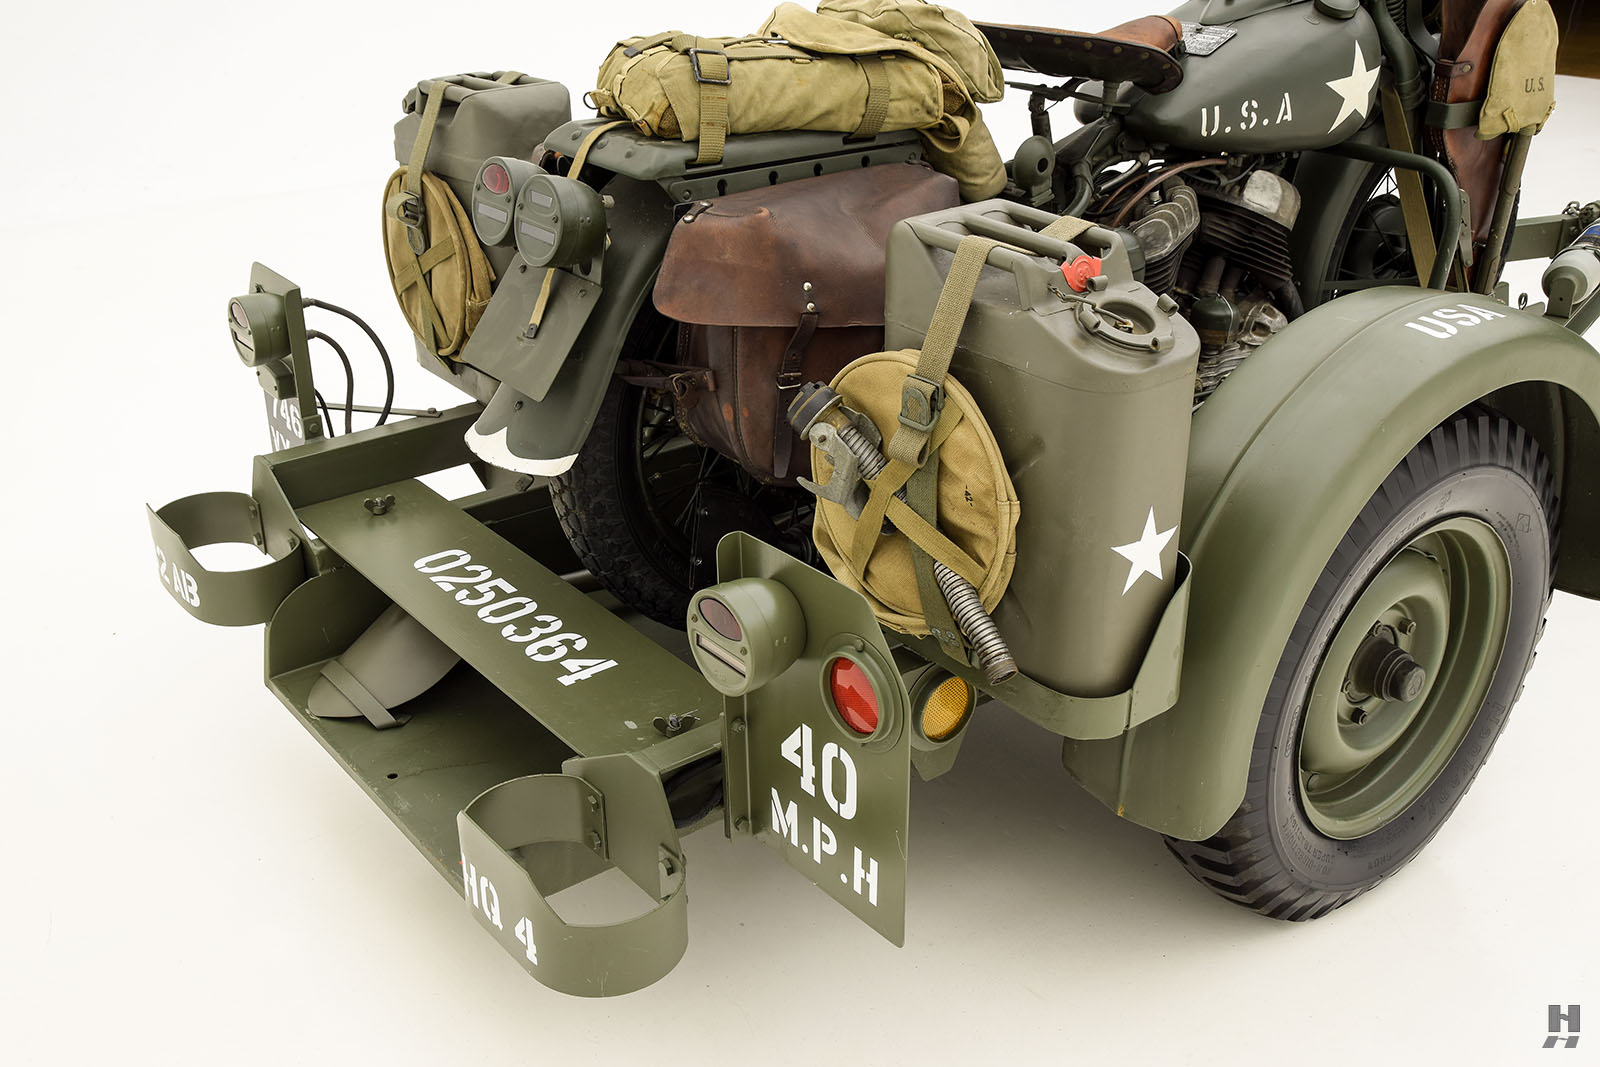 1943 Dodge WC51 And 1943 Harley WL For Sale | Buy Classic ...